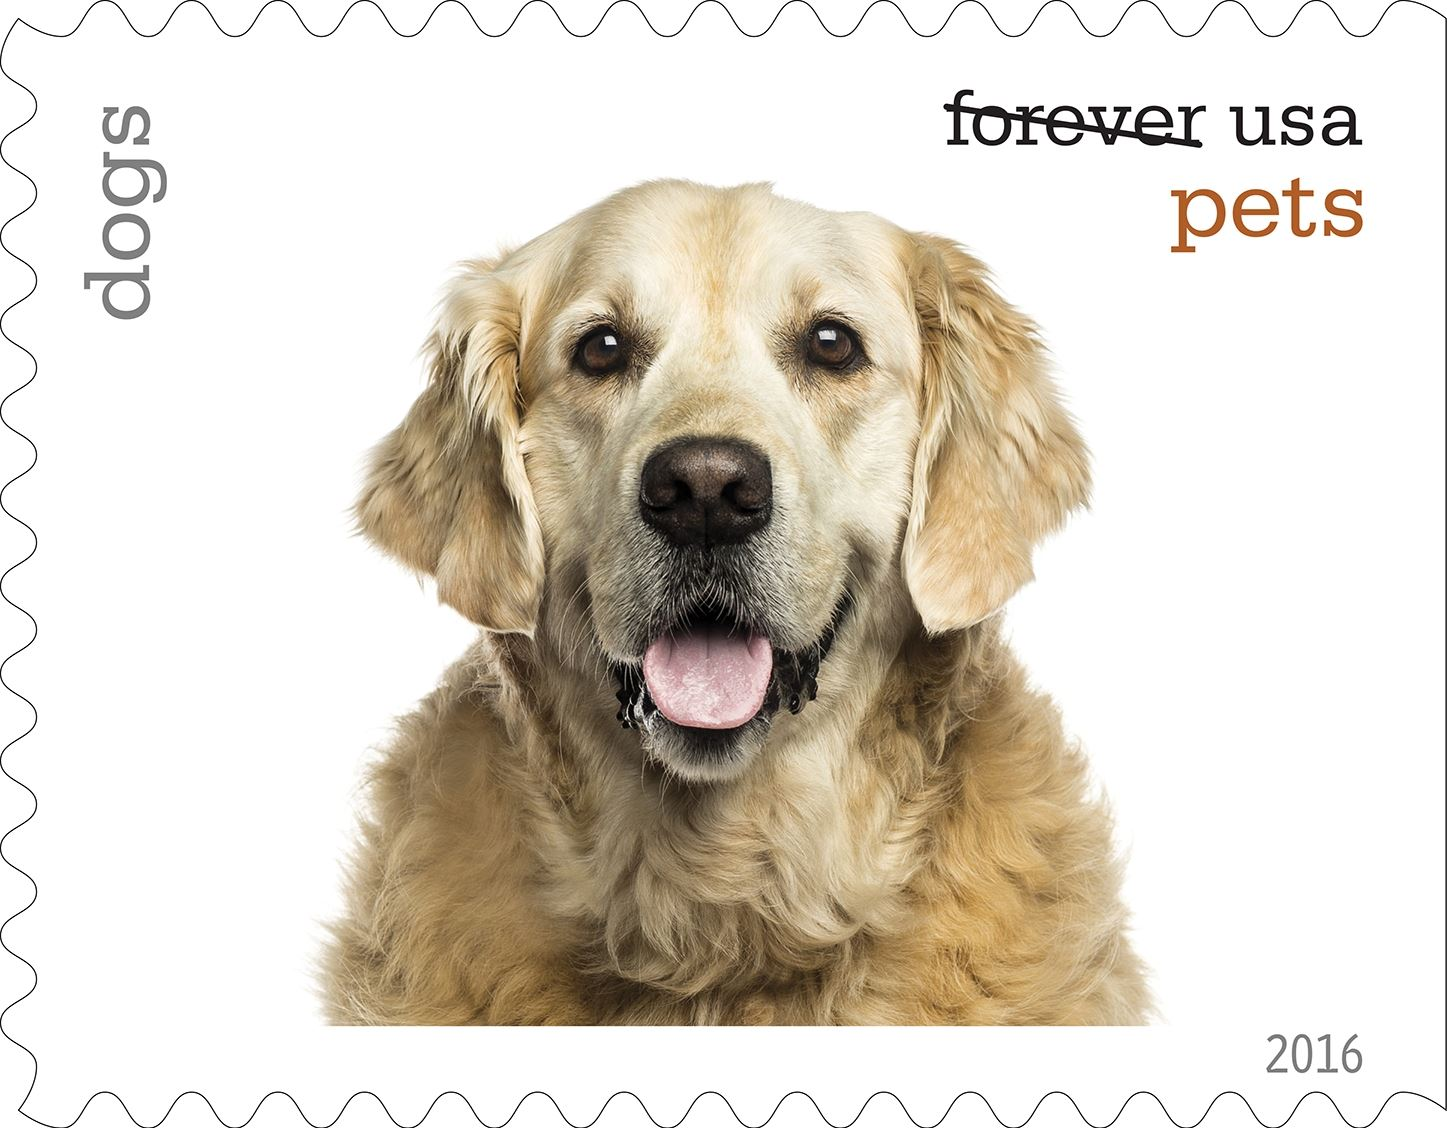 4-0_USPS16STA004e-13 Dogs will be among the pets celebrated in an upcoming set of Forever stamps issued by the U.S. Postal Service.